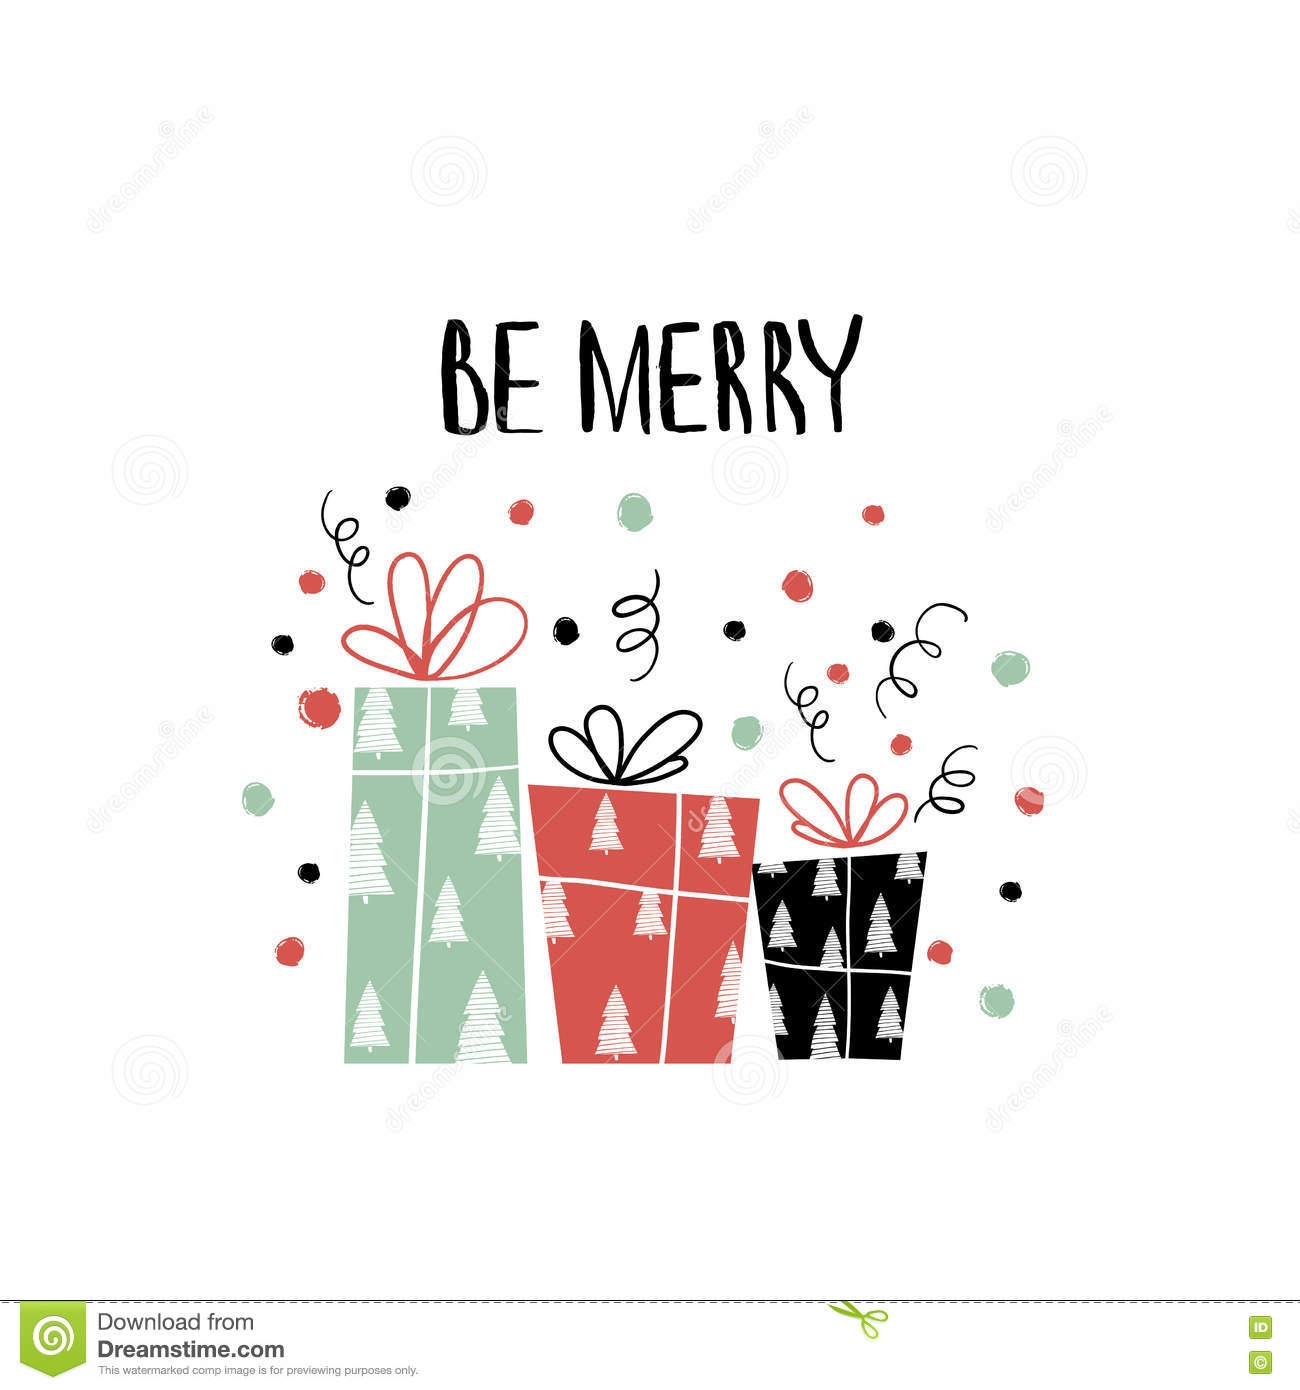 Hand drawn holiday lettering. Christmas collection of unique lettering for greeting cards, stationary, gift tags, scrapbooking.